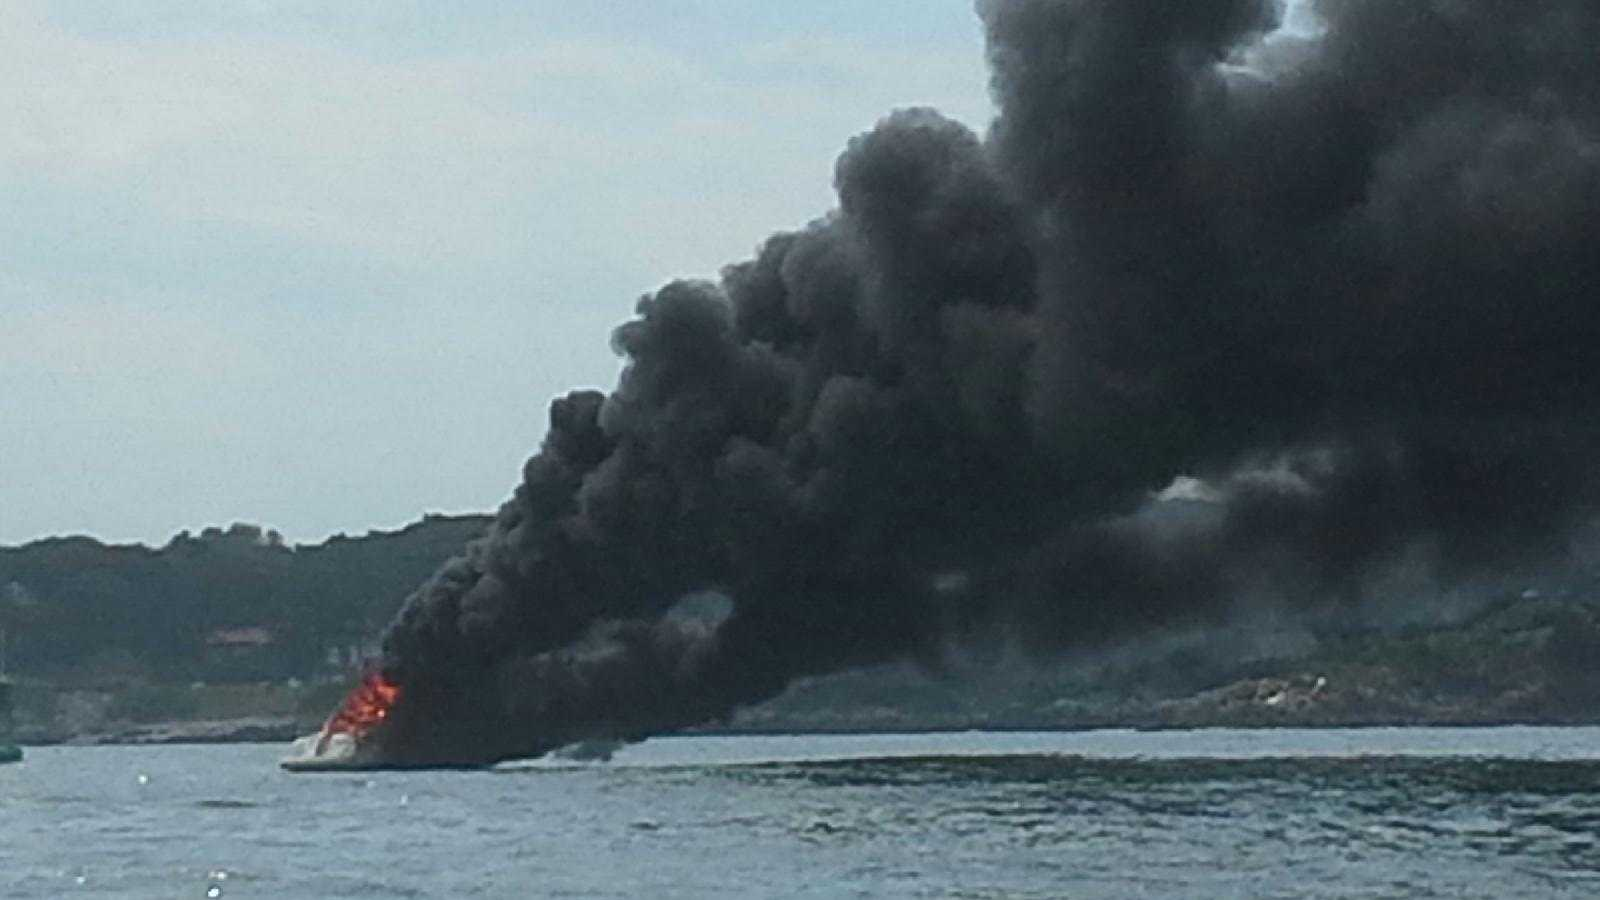 Four people were rescued on Sunday after their boat caught fire in Casco Bay.